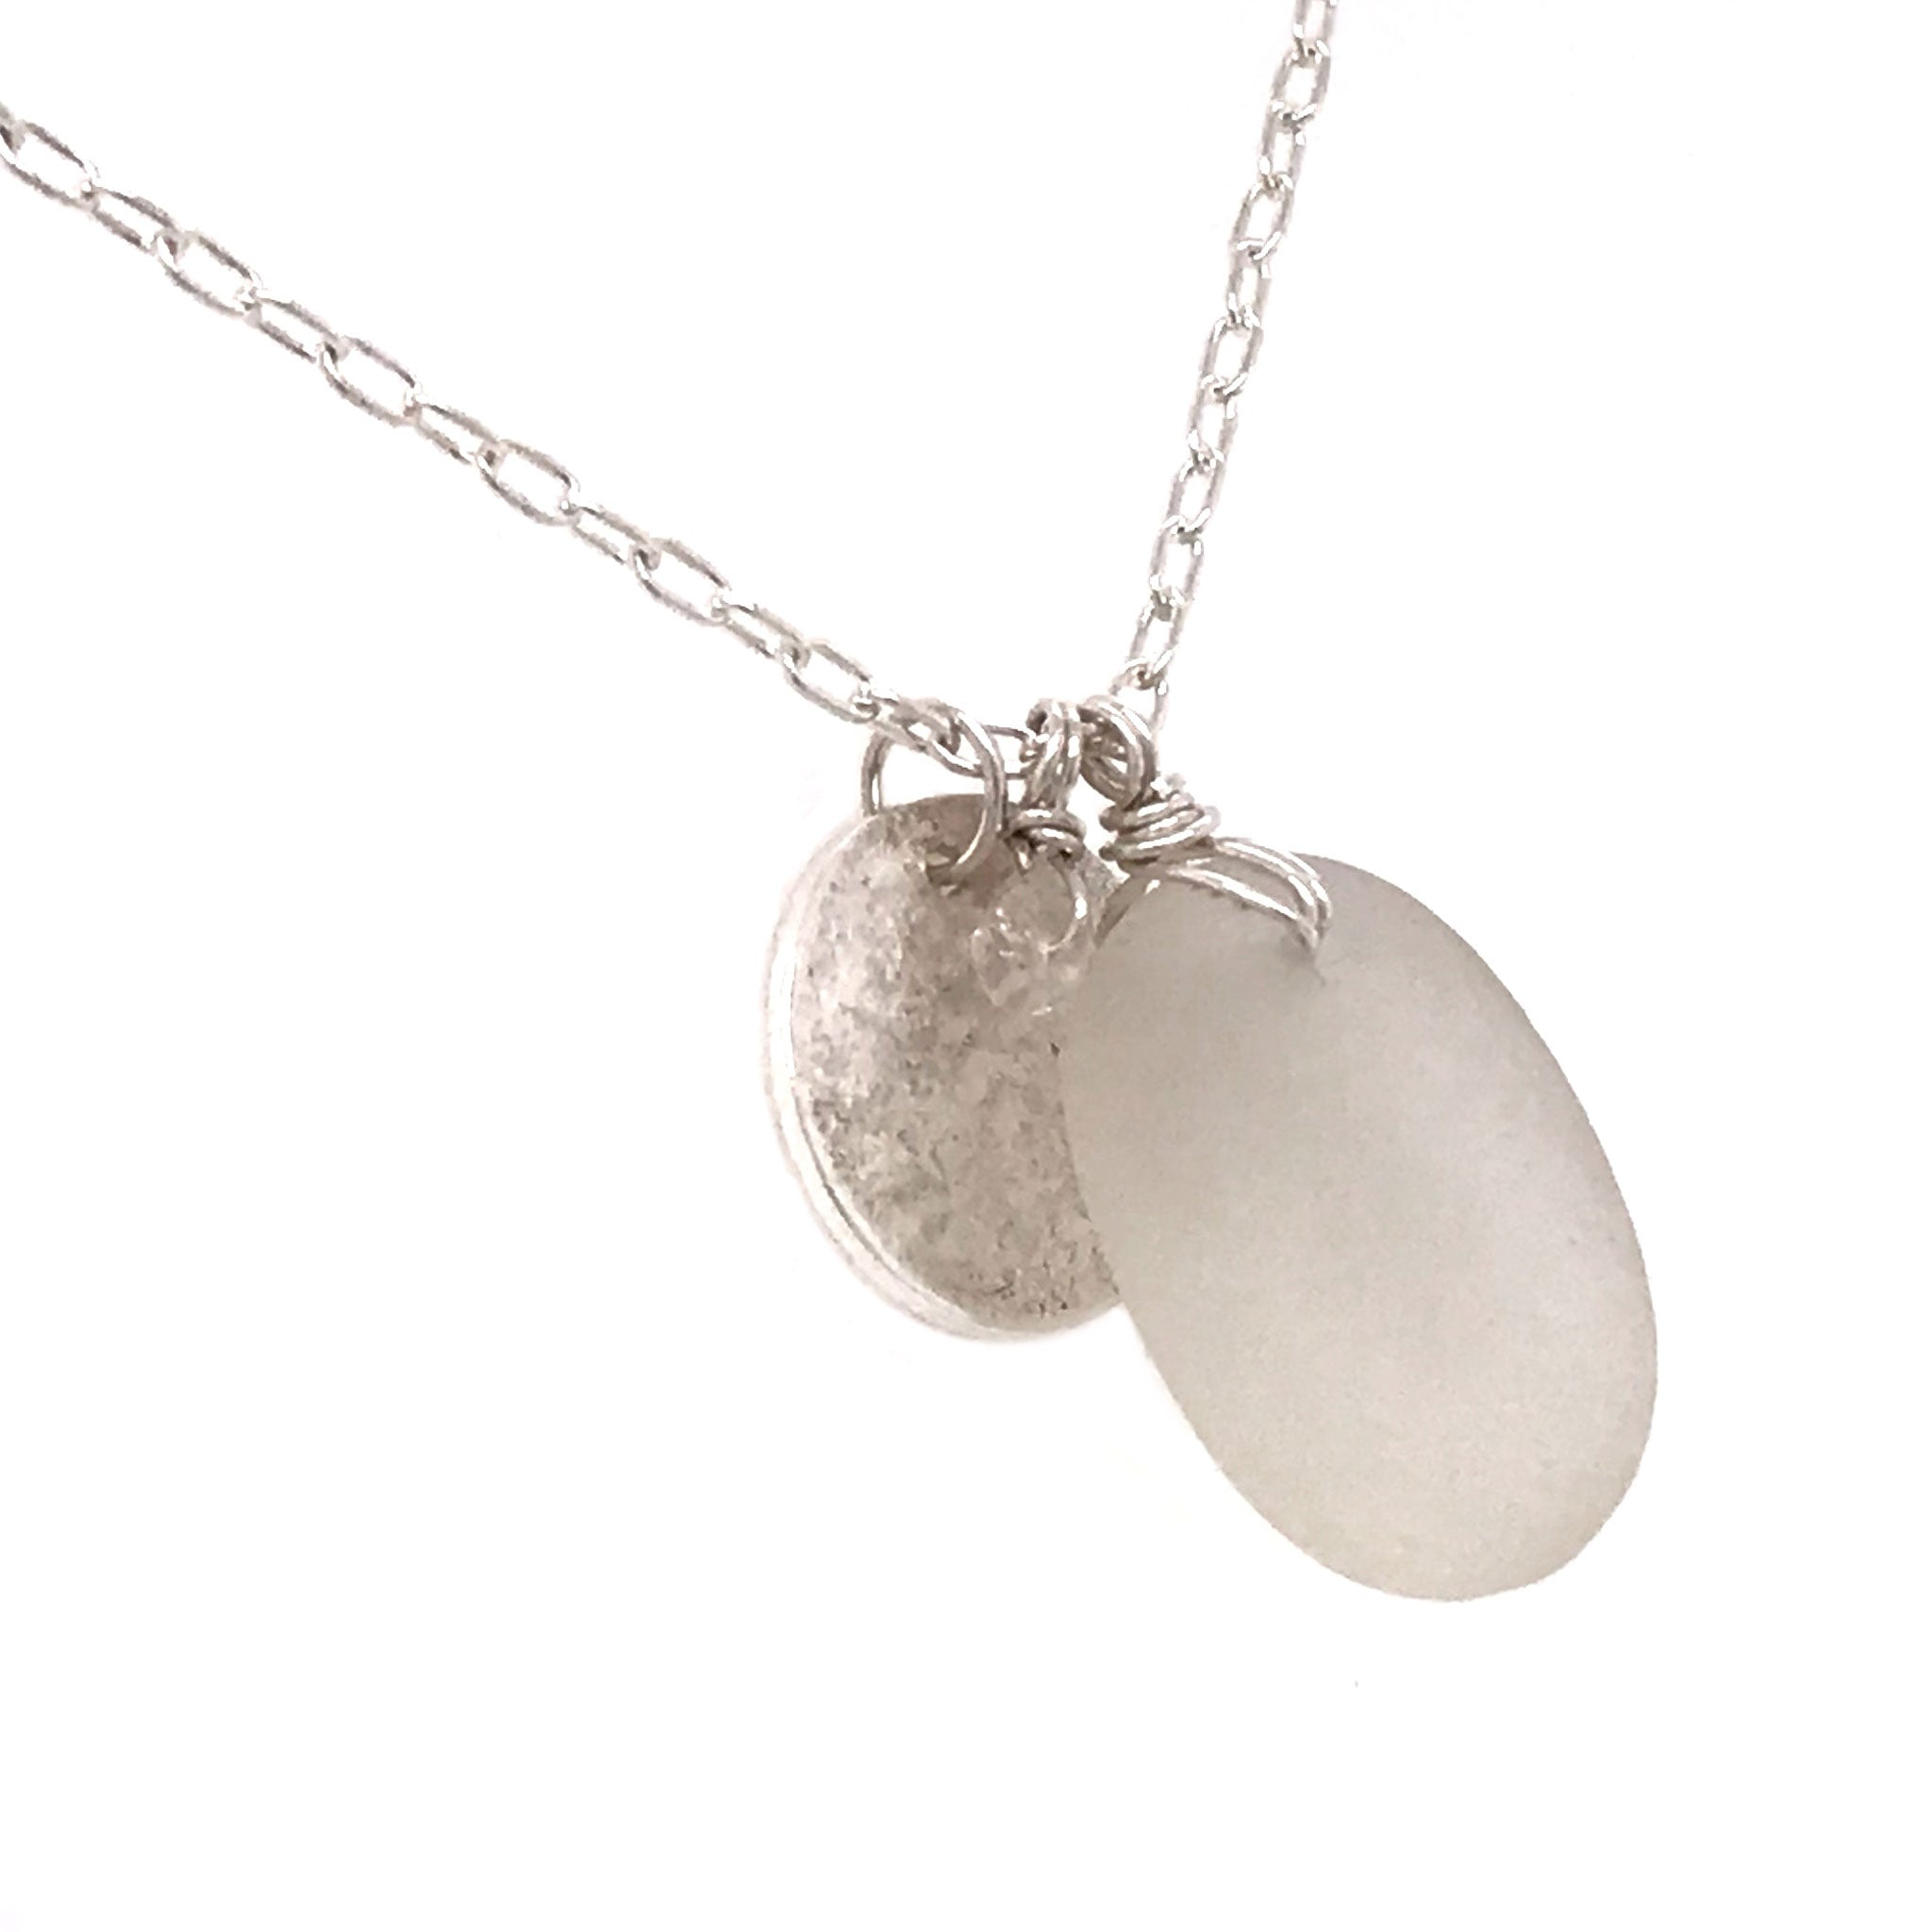 clear seaglass on silver necklace with hammered disc charm kriket broadhurst jewellery